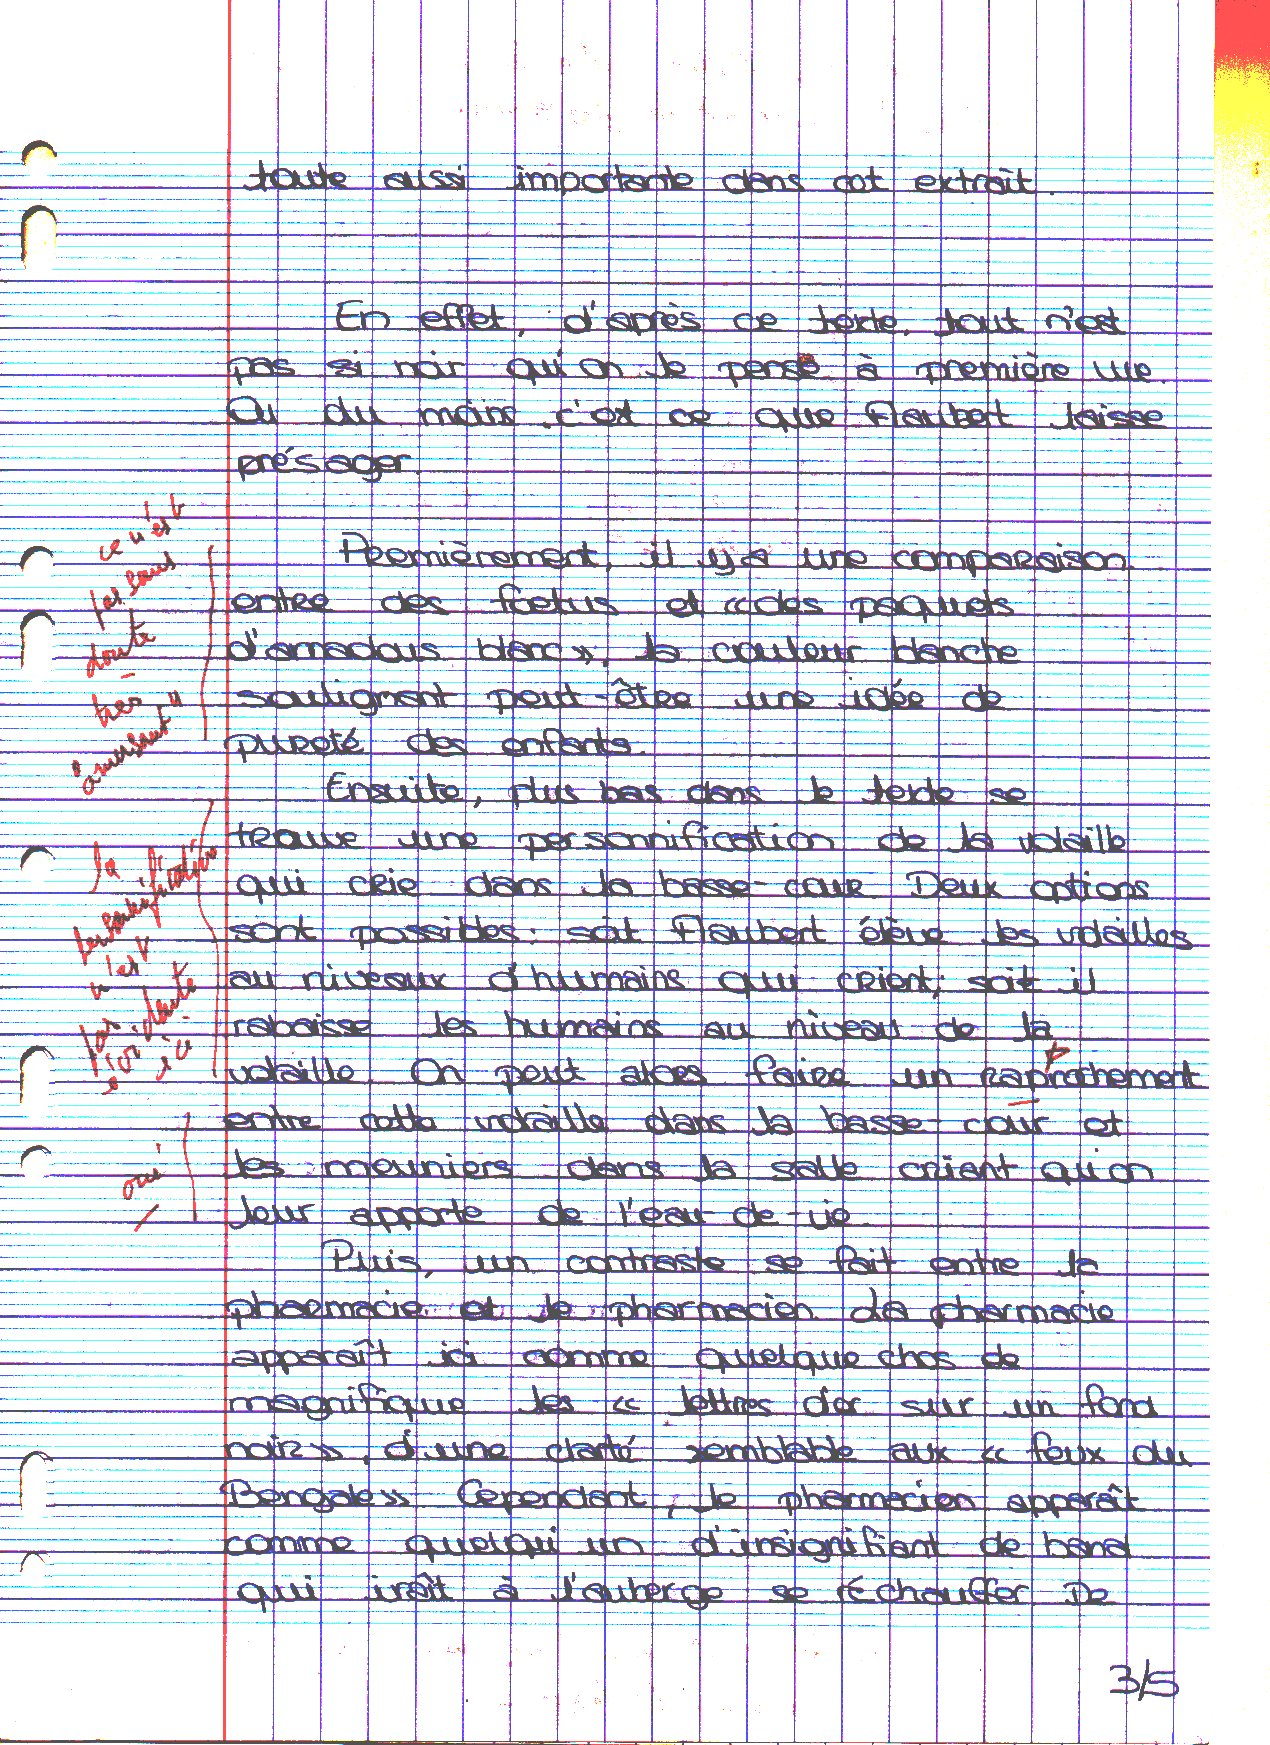 Comment Faire Une Intro De Dissertation En Philo